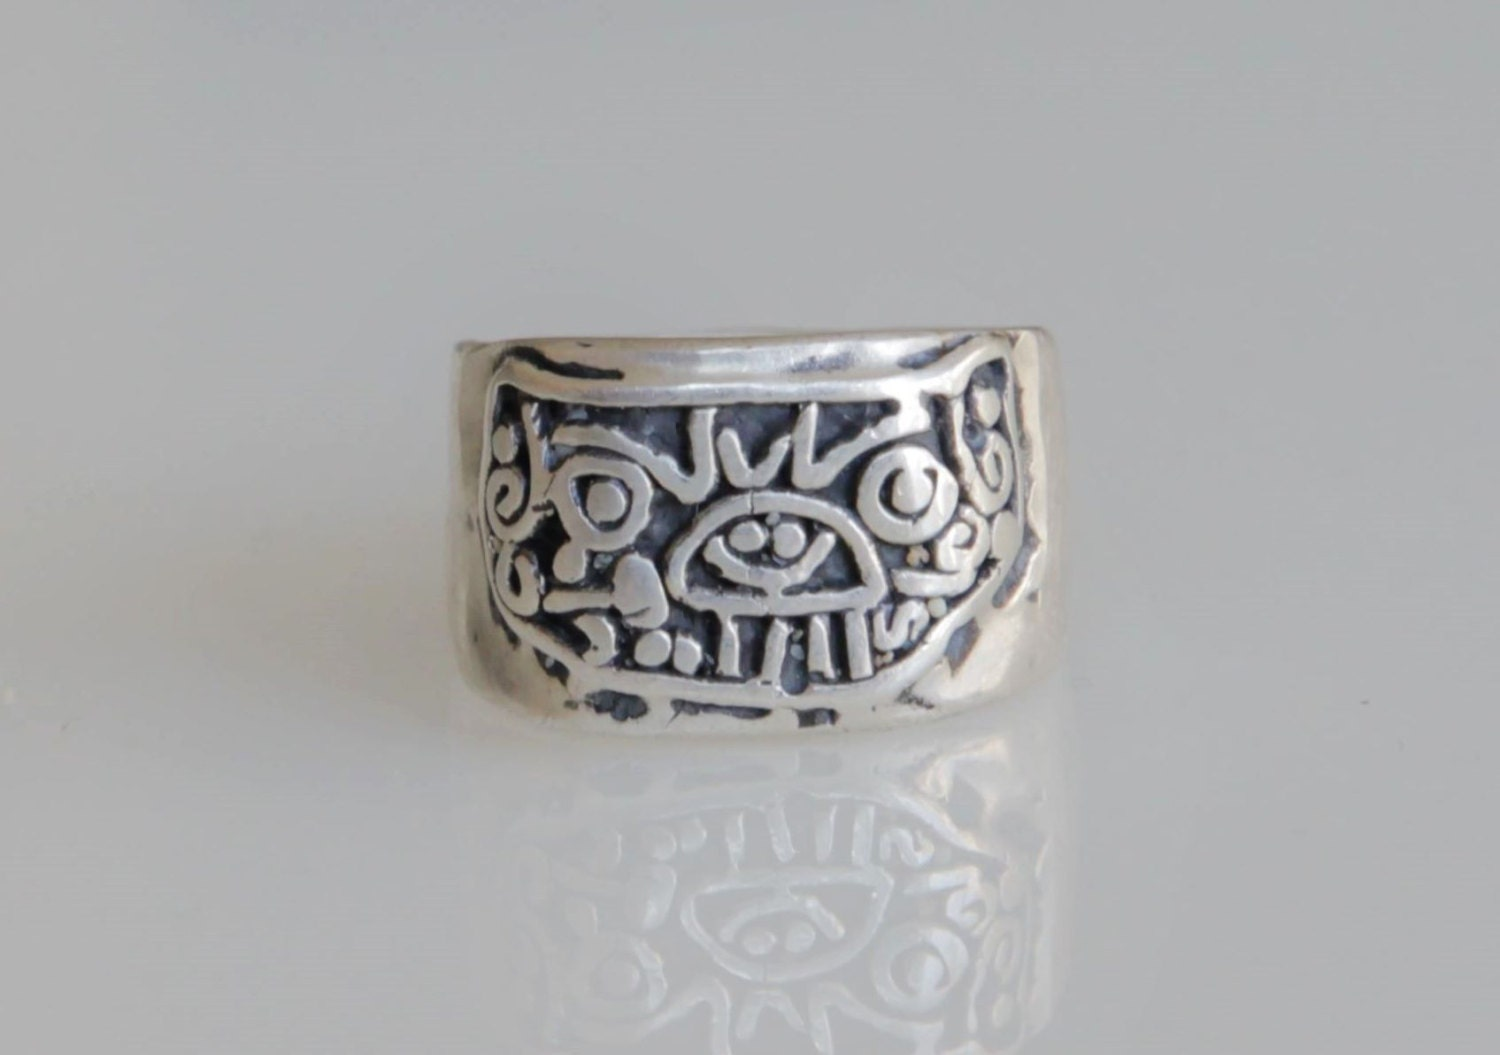 jaguar ring mayan ring sterling silver 925 pirate ring